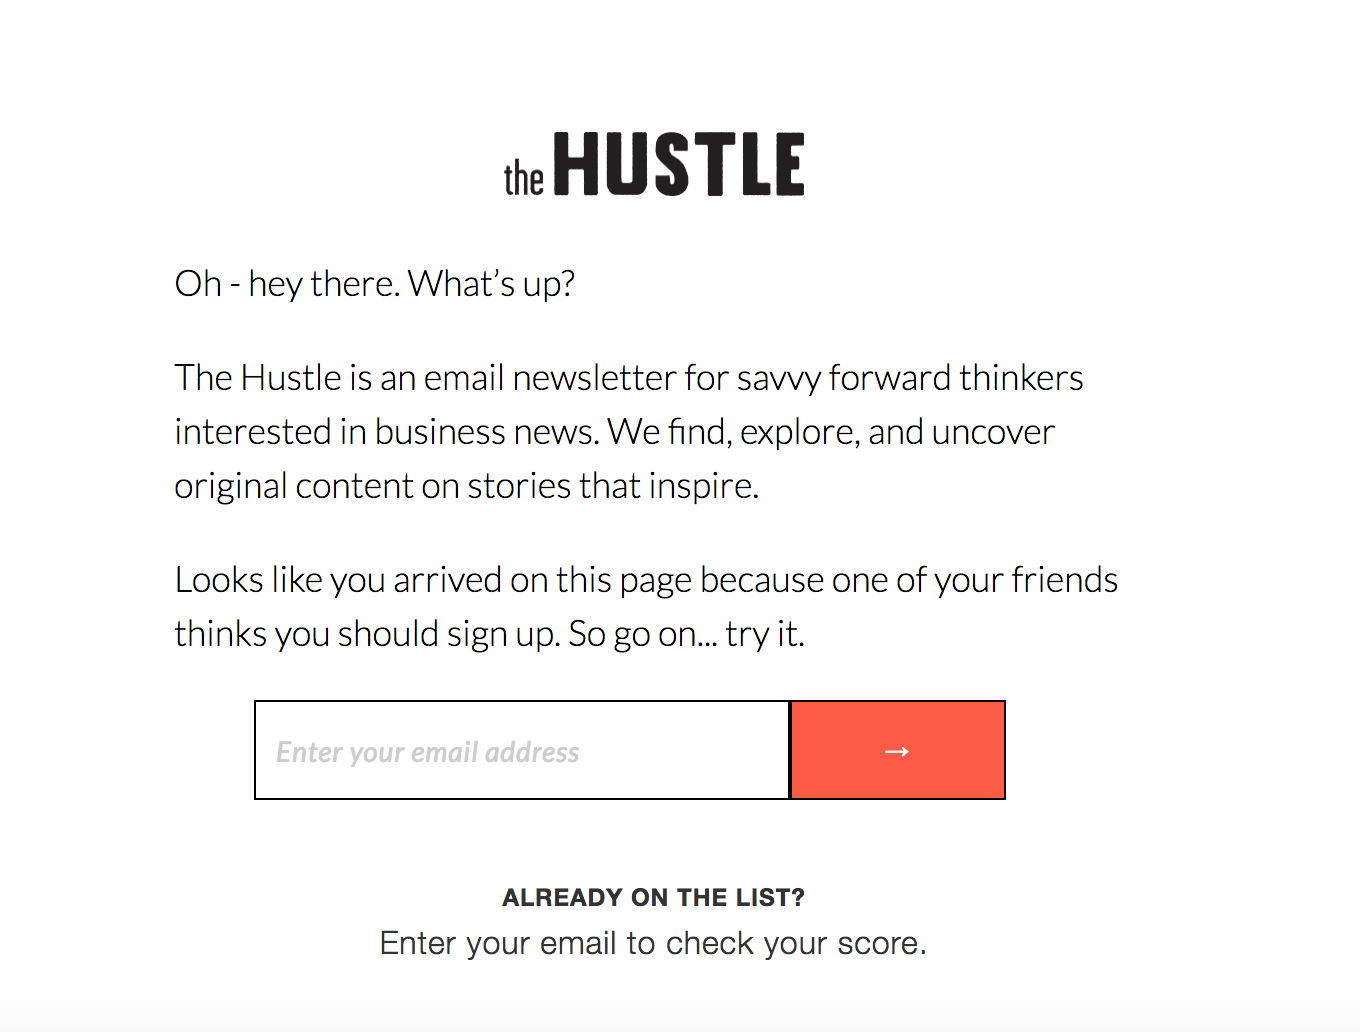 The Hustle social referral Freshchat blog